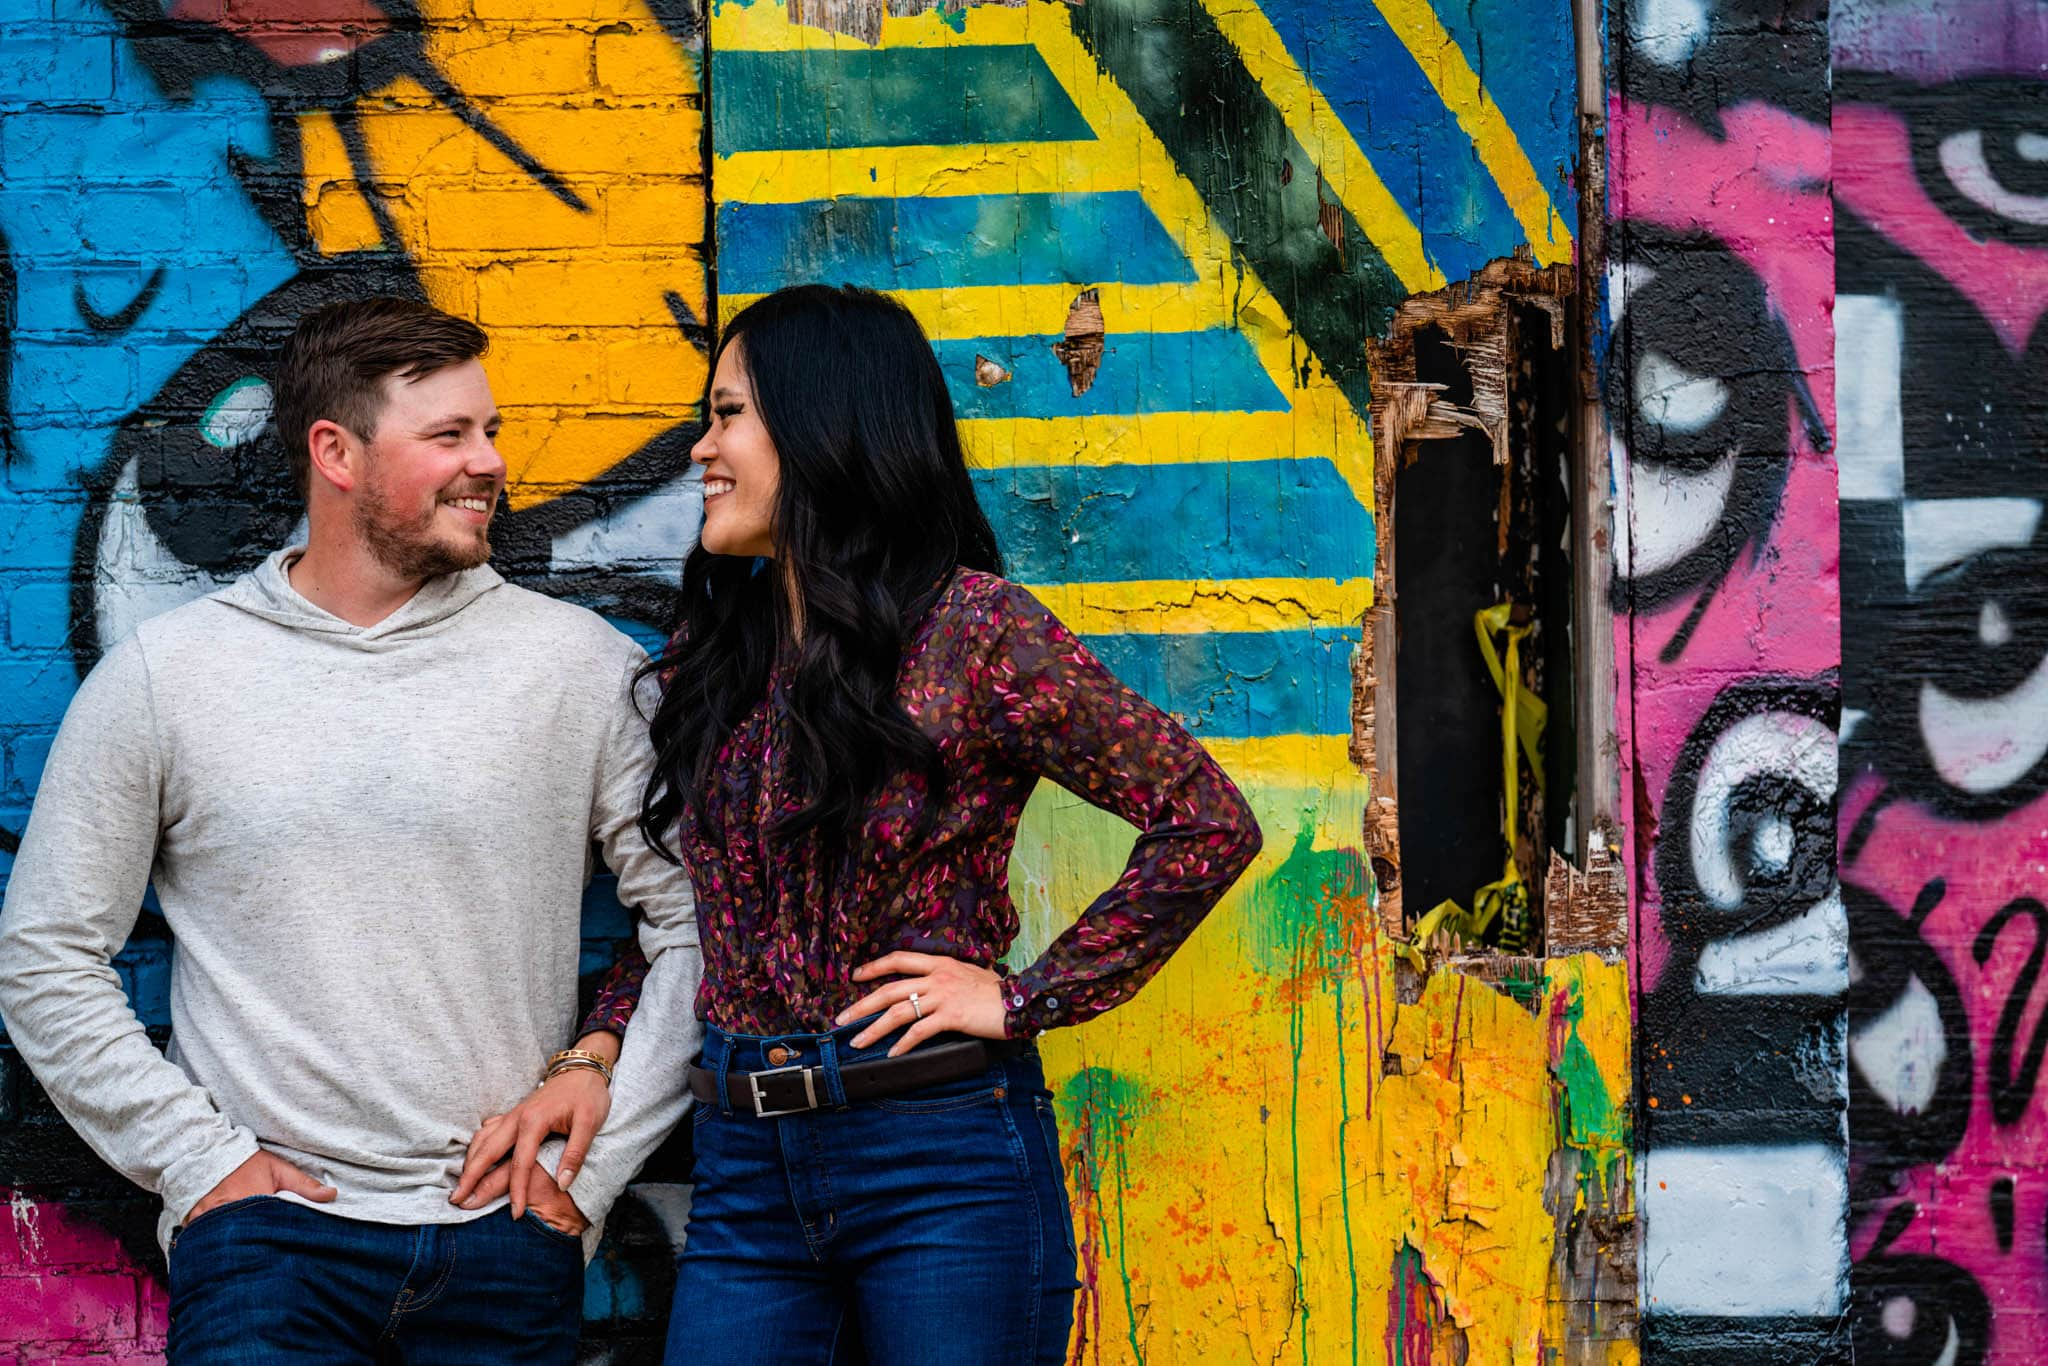 Man and woman stand together in front of colorful graffiti wall in downtown Dayton for their summer engagement photos.